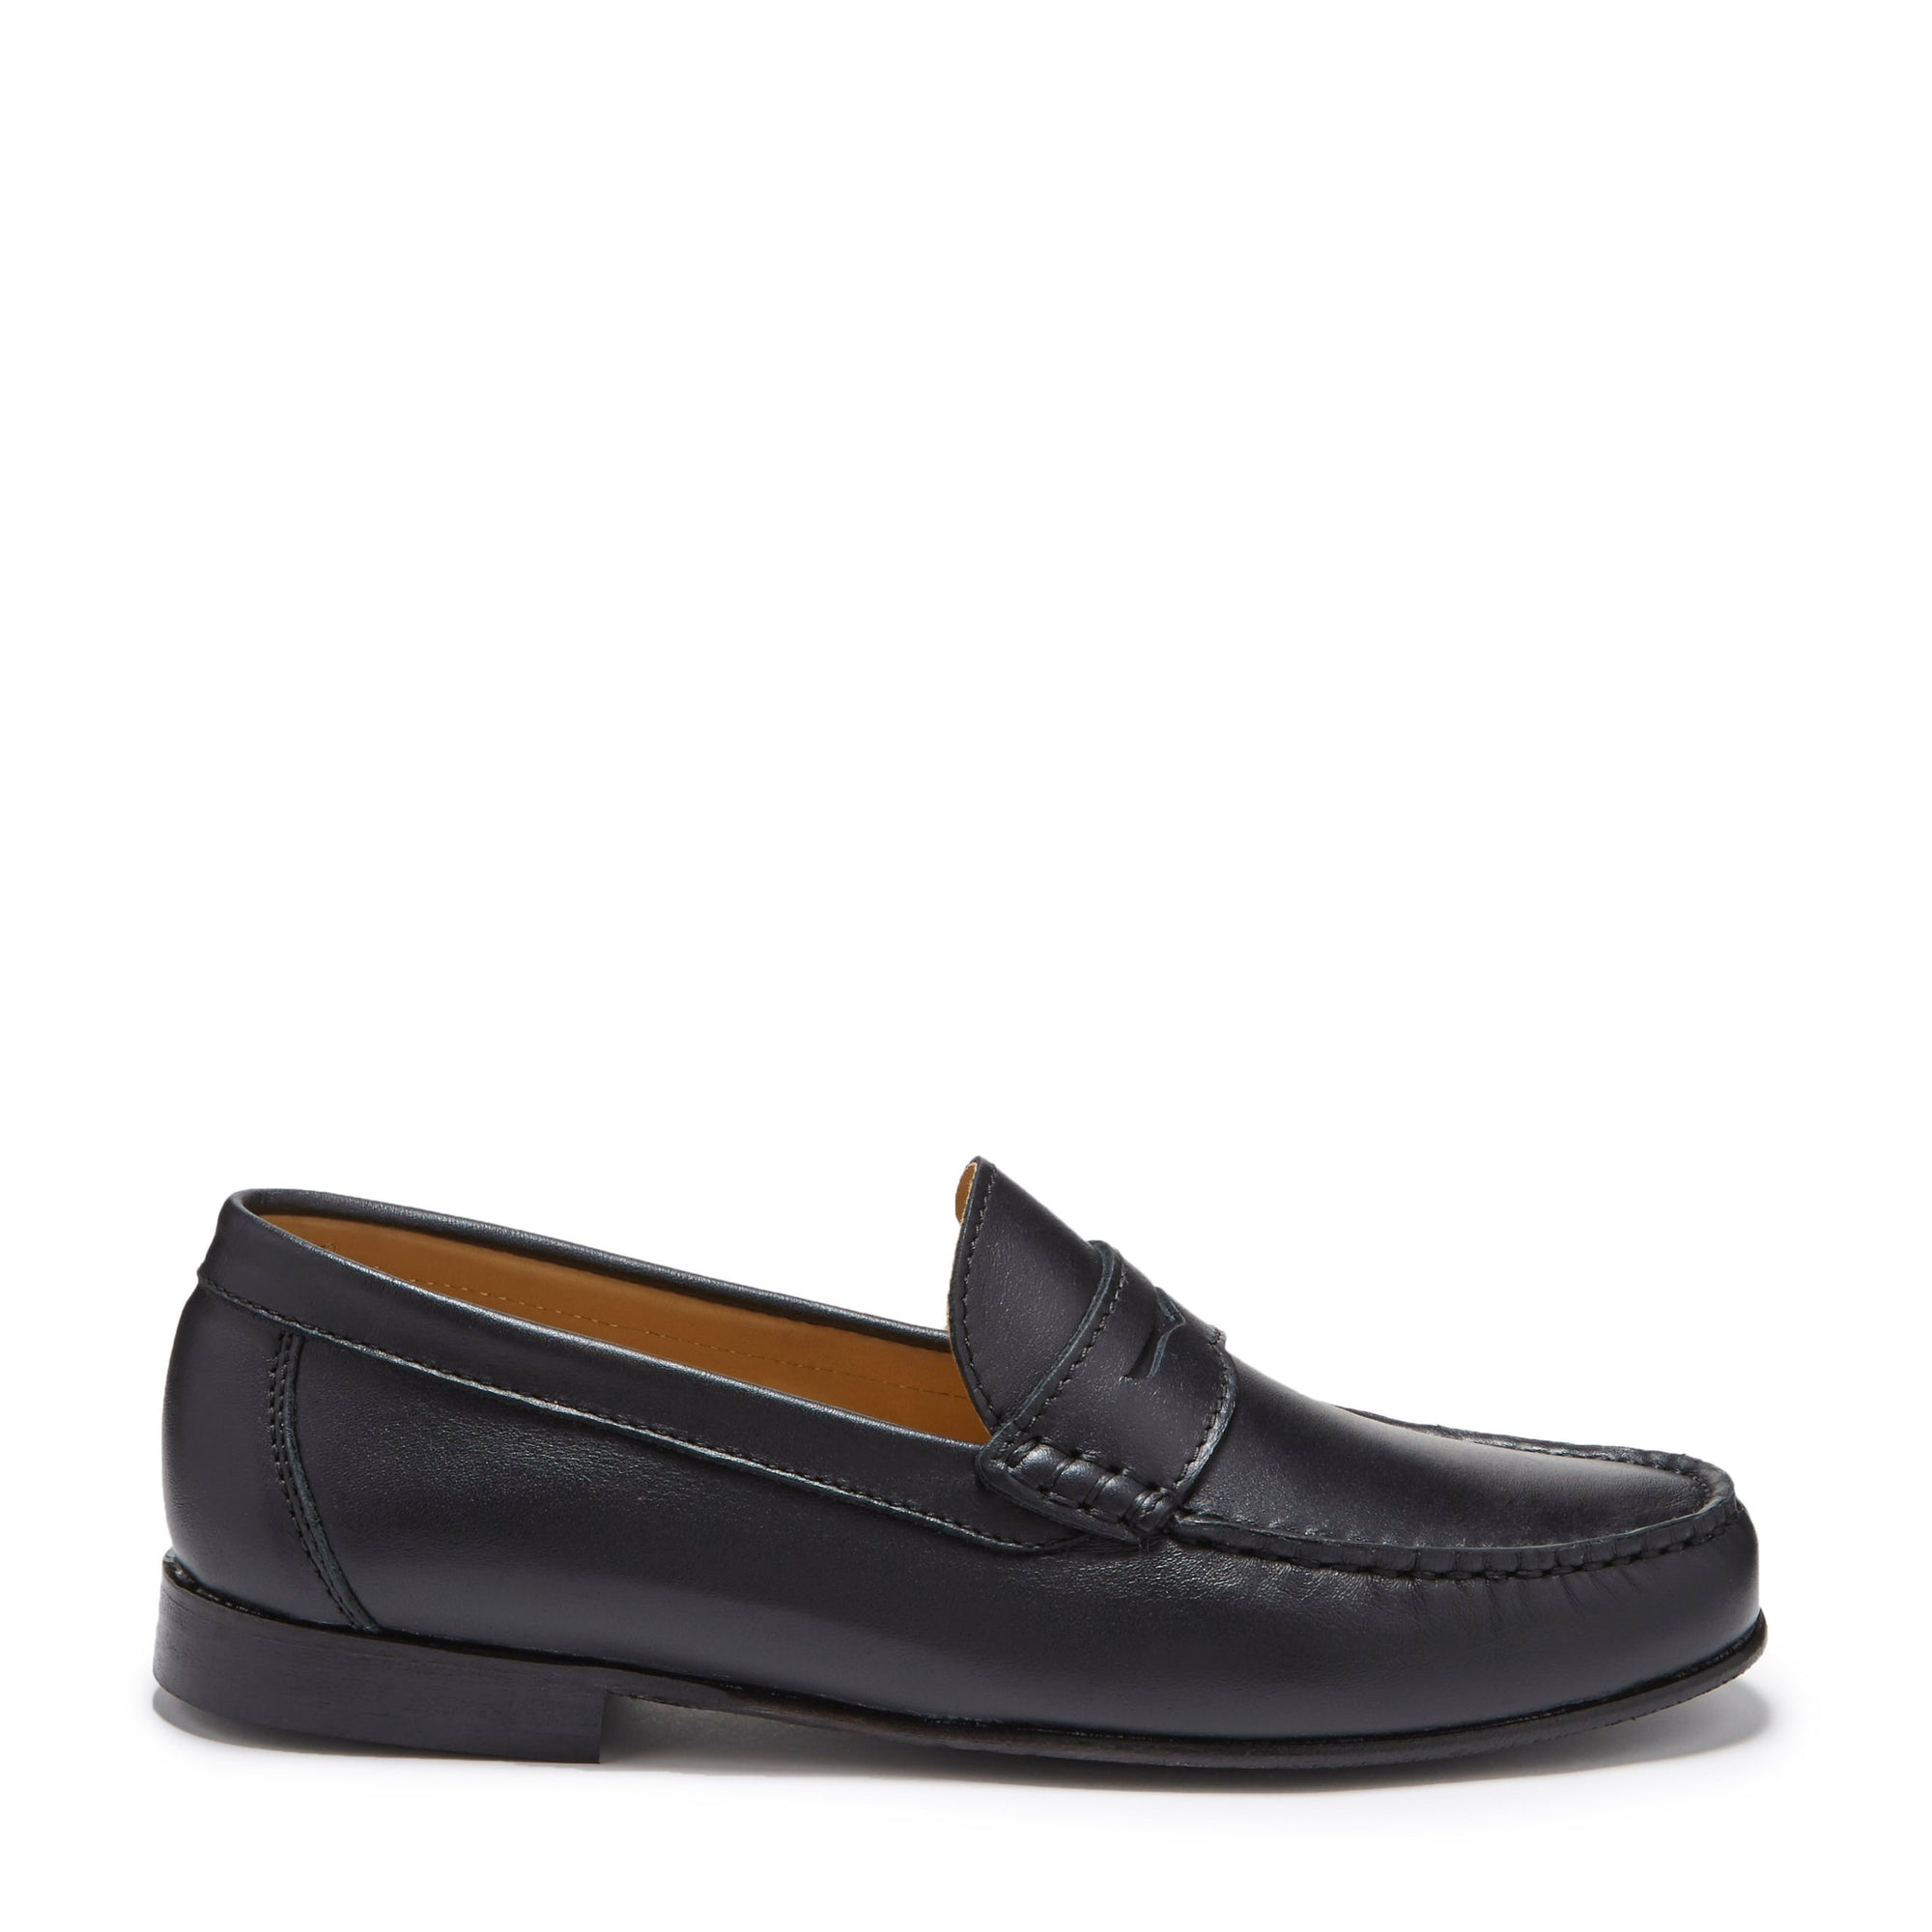 Black Leather, Penny Loafers, Leather Sole Side